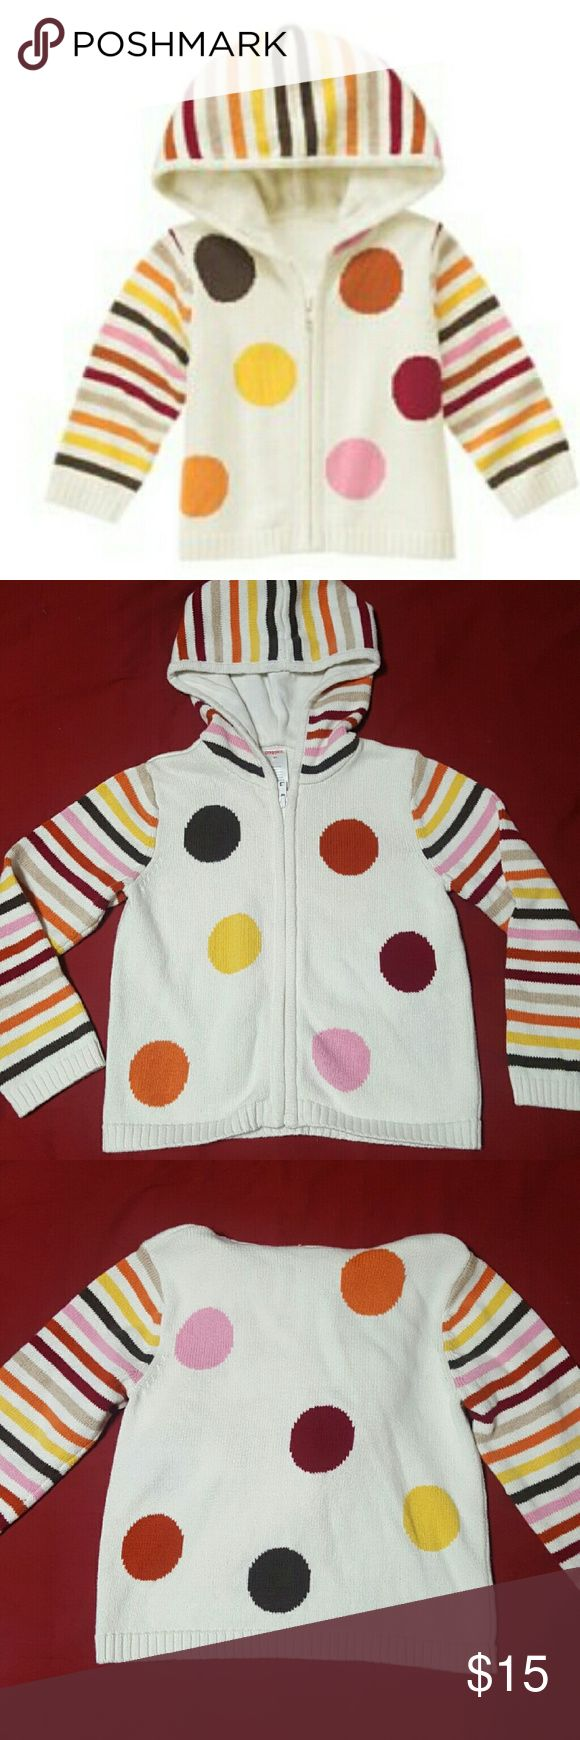 Gymboree Polka Dot Striped Hoodie Sweater Girls 5T Gymboree Sweater from the Fall For Monkeys Line. Polka Dots and Stripes with attached hoodie. Double layered for extra warmth. Girls Sz: 5T   New with Tags. Gymboree Shirts & Tops Sweatshirts & Hoodies